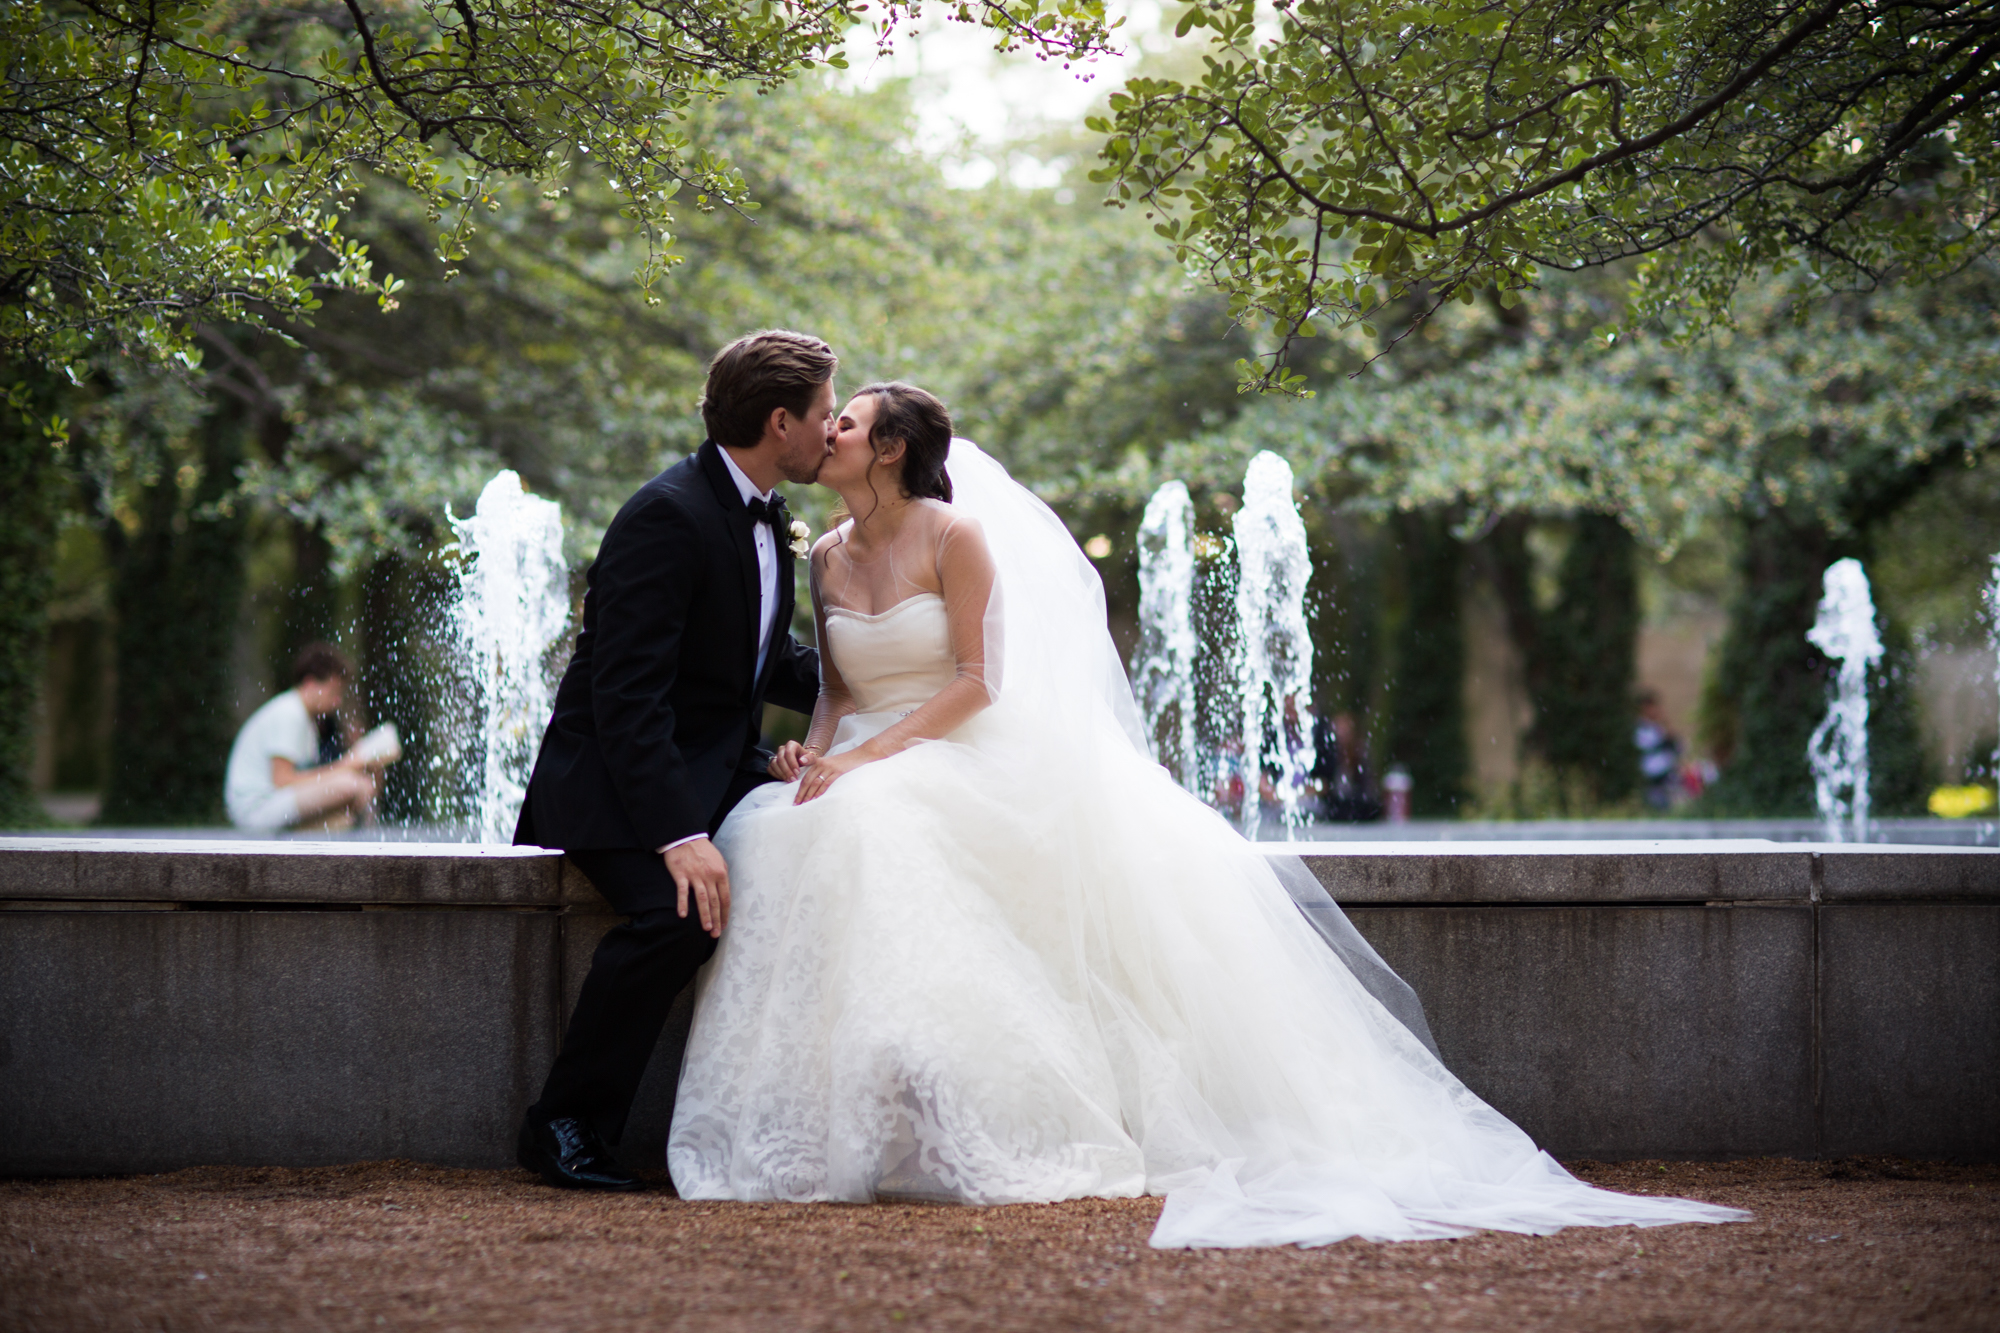 Bride and groom portrait at the Chicago Art Institute gardens.